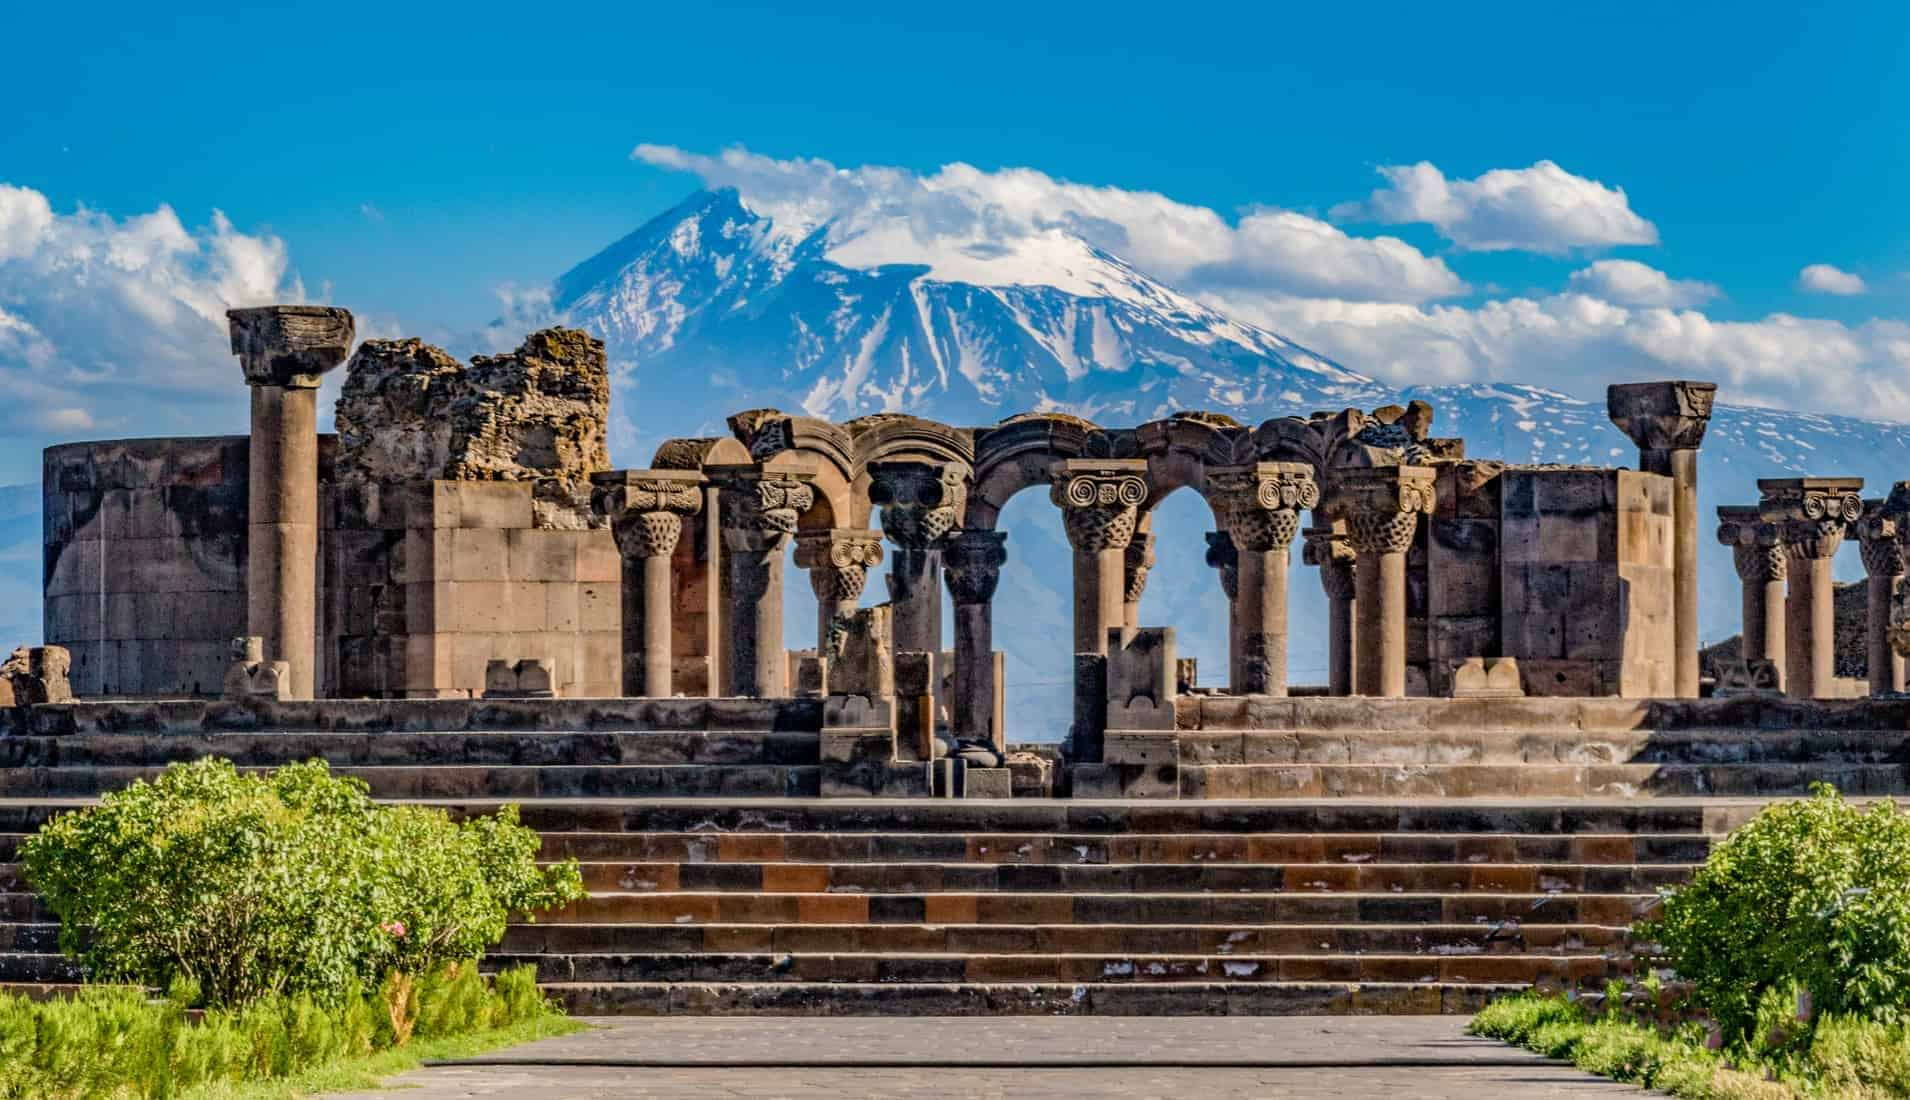 Travel highlights in Armenia. Ruins of the Zvartnos temple in Yerevan, Armenia